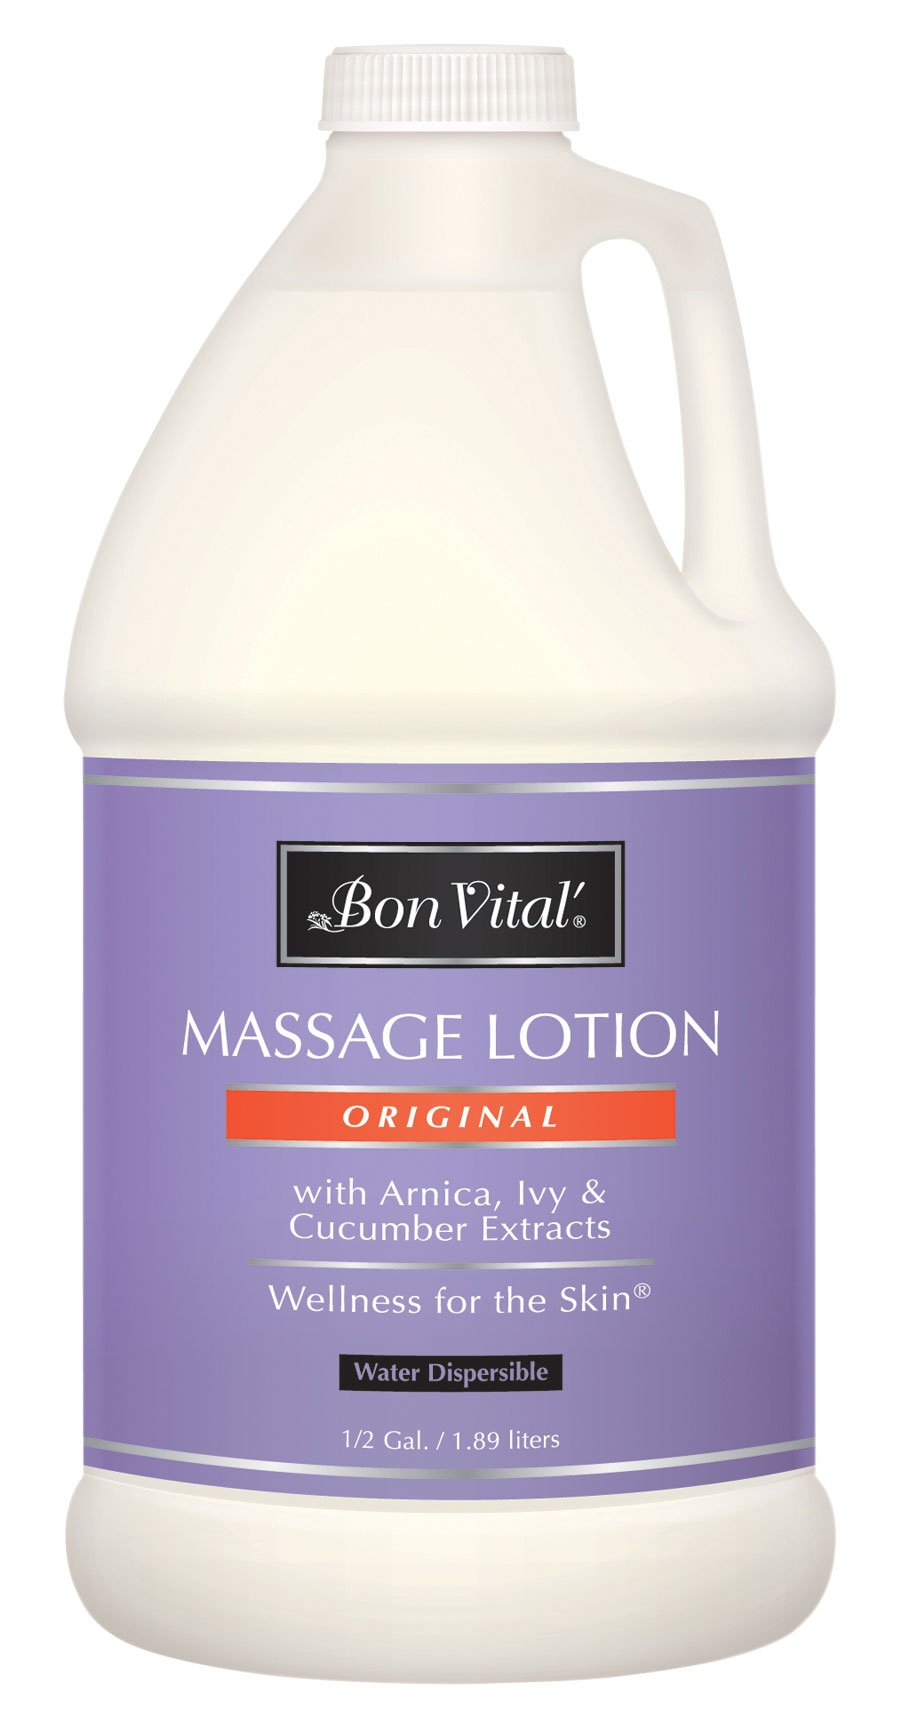 Bon Vital' Original Massage Lotion for a Versatile Massage Foundation to Relax Sore Muscles & Repair Dry Skin, Lightweight, Non-Greasy Formula to Moisturize and Repair Dry Skin, 1/2 Gallon Bottle